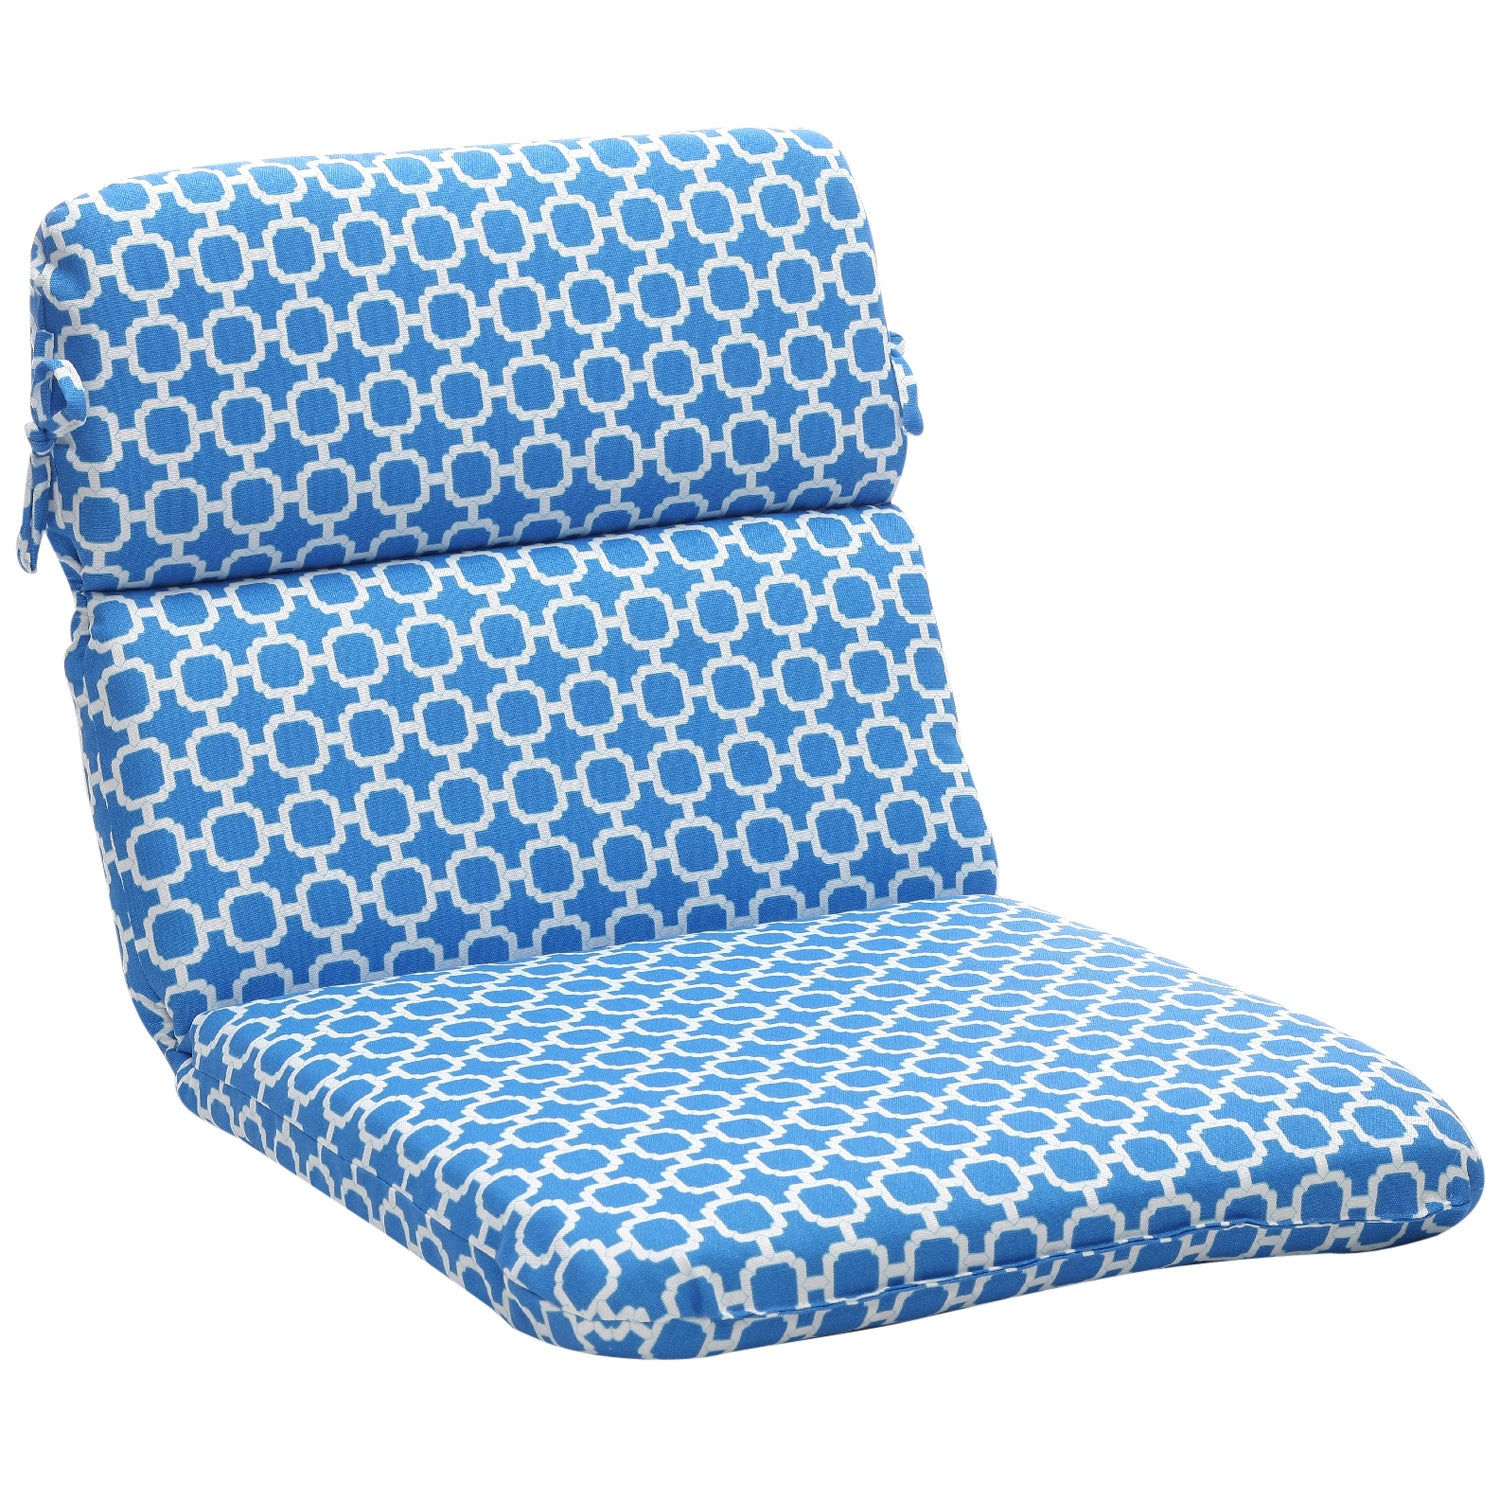 Pillow Perfect Blue White Geometric Outdoor Cushion